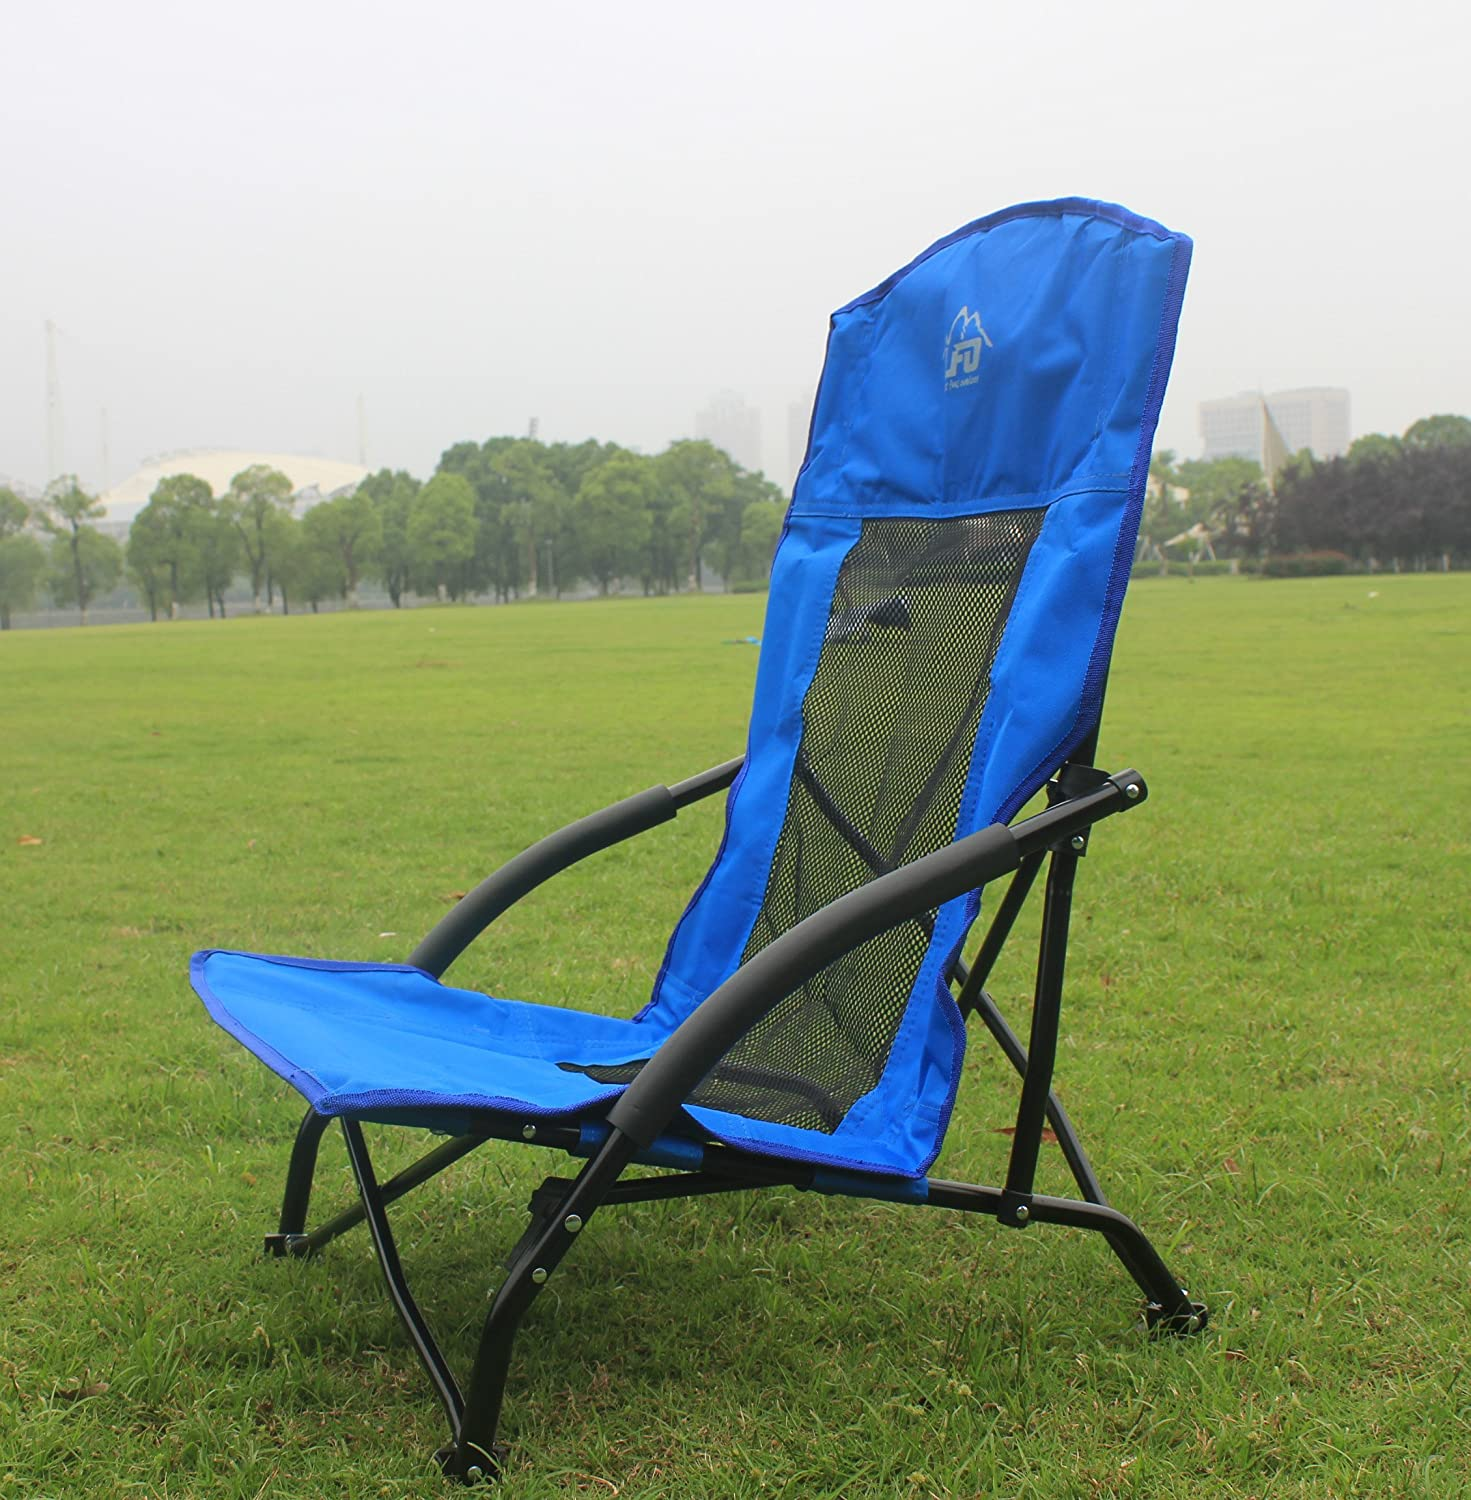 Amazon Funs Portable Low Sling Folding Chair pact In a